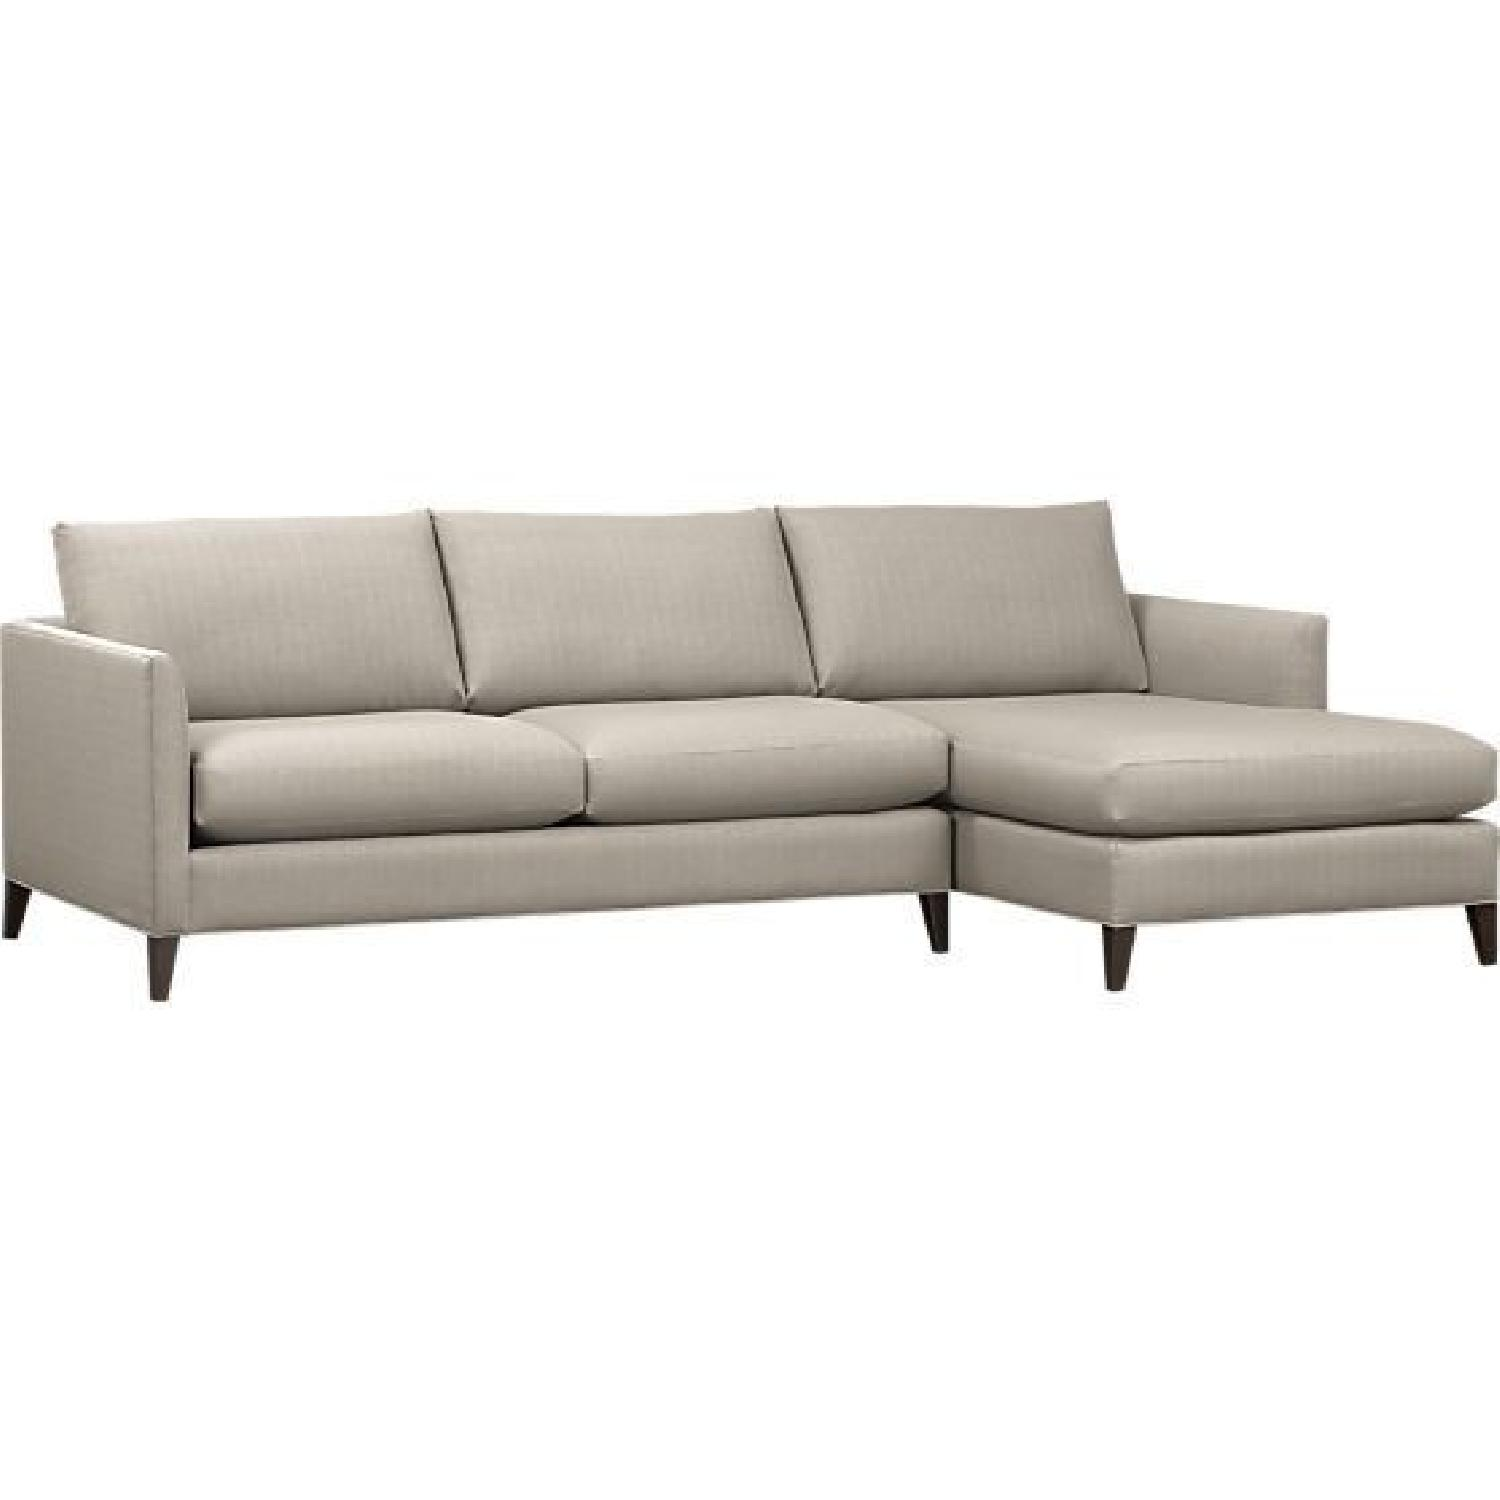 Crate & Barrel Klyne Light Grey 2-Piece Sectional Sofa